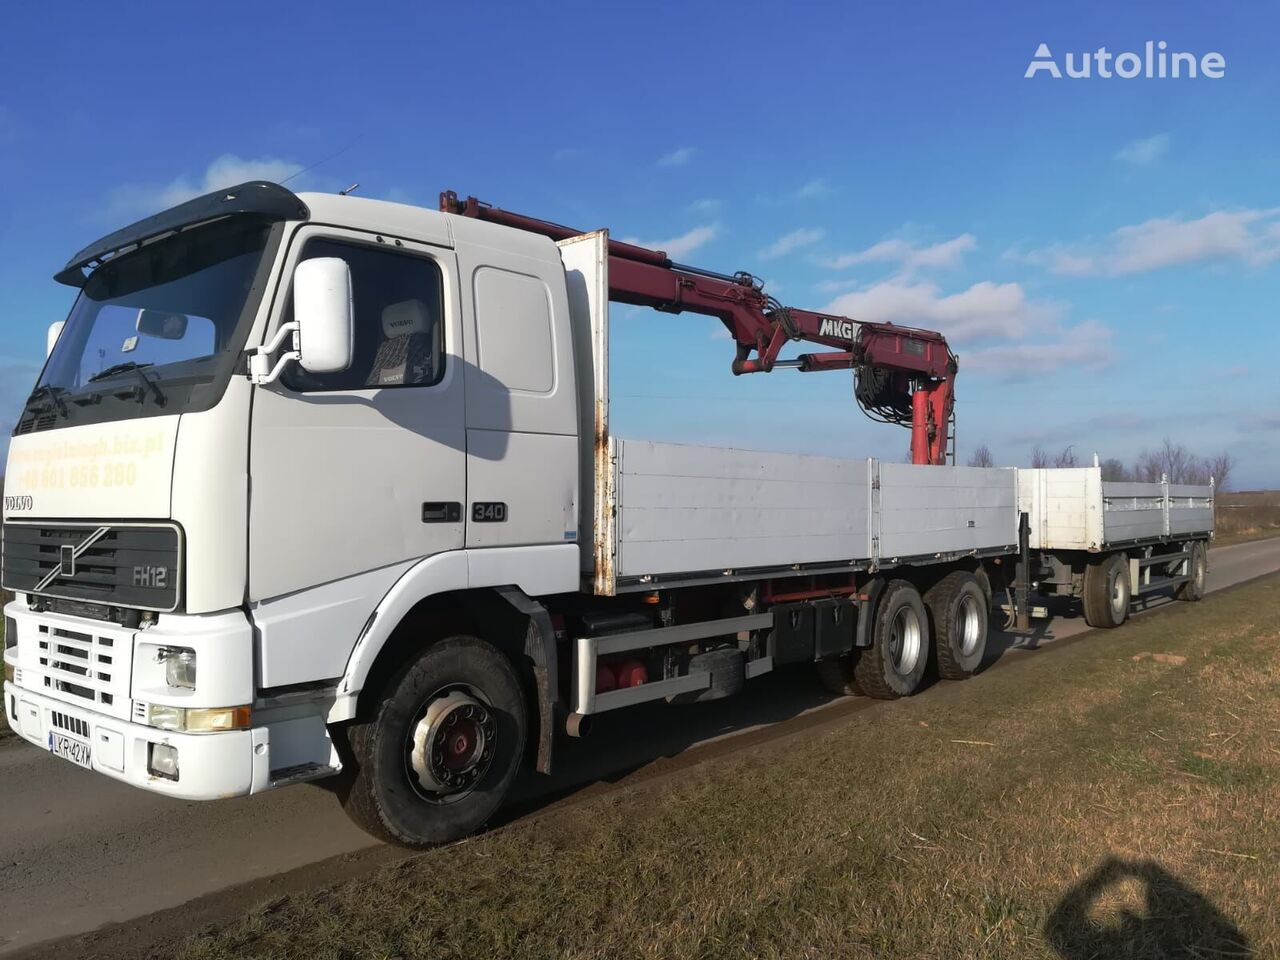 VOLVO Fh 12 6x4R flatbed truck + flatbed trailer